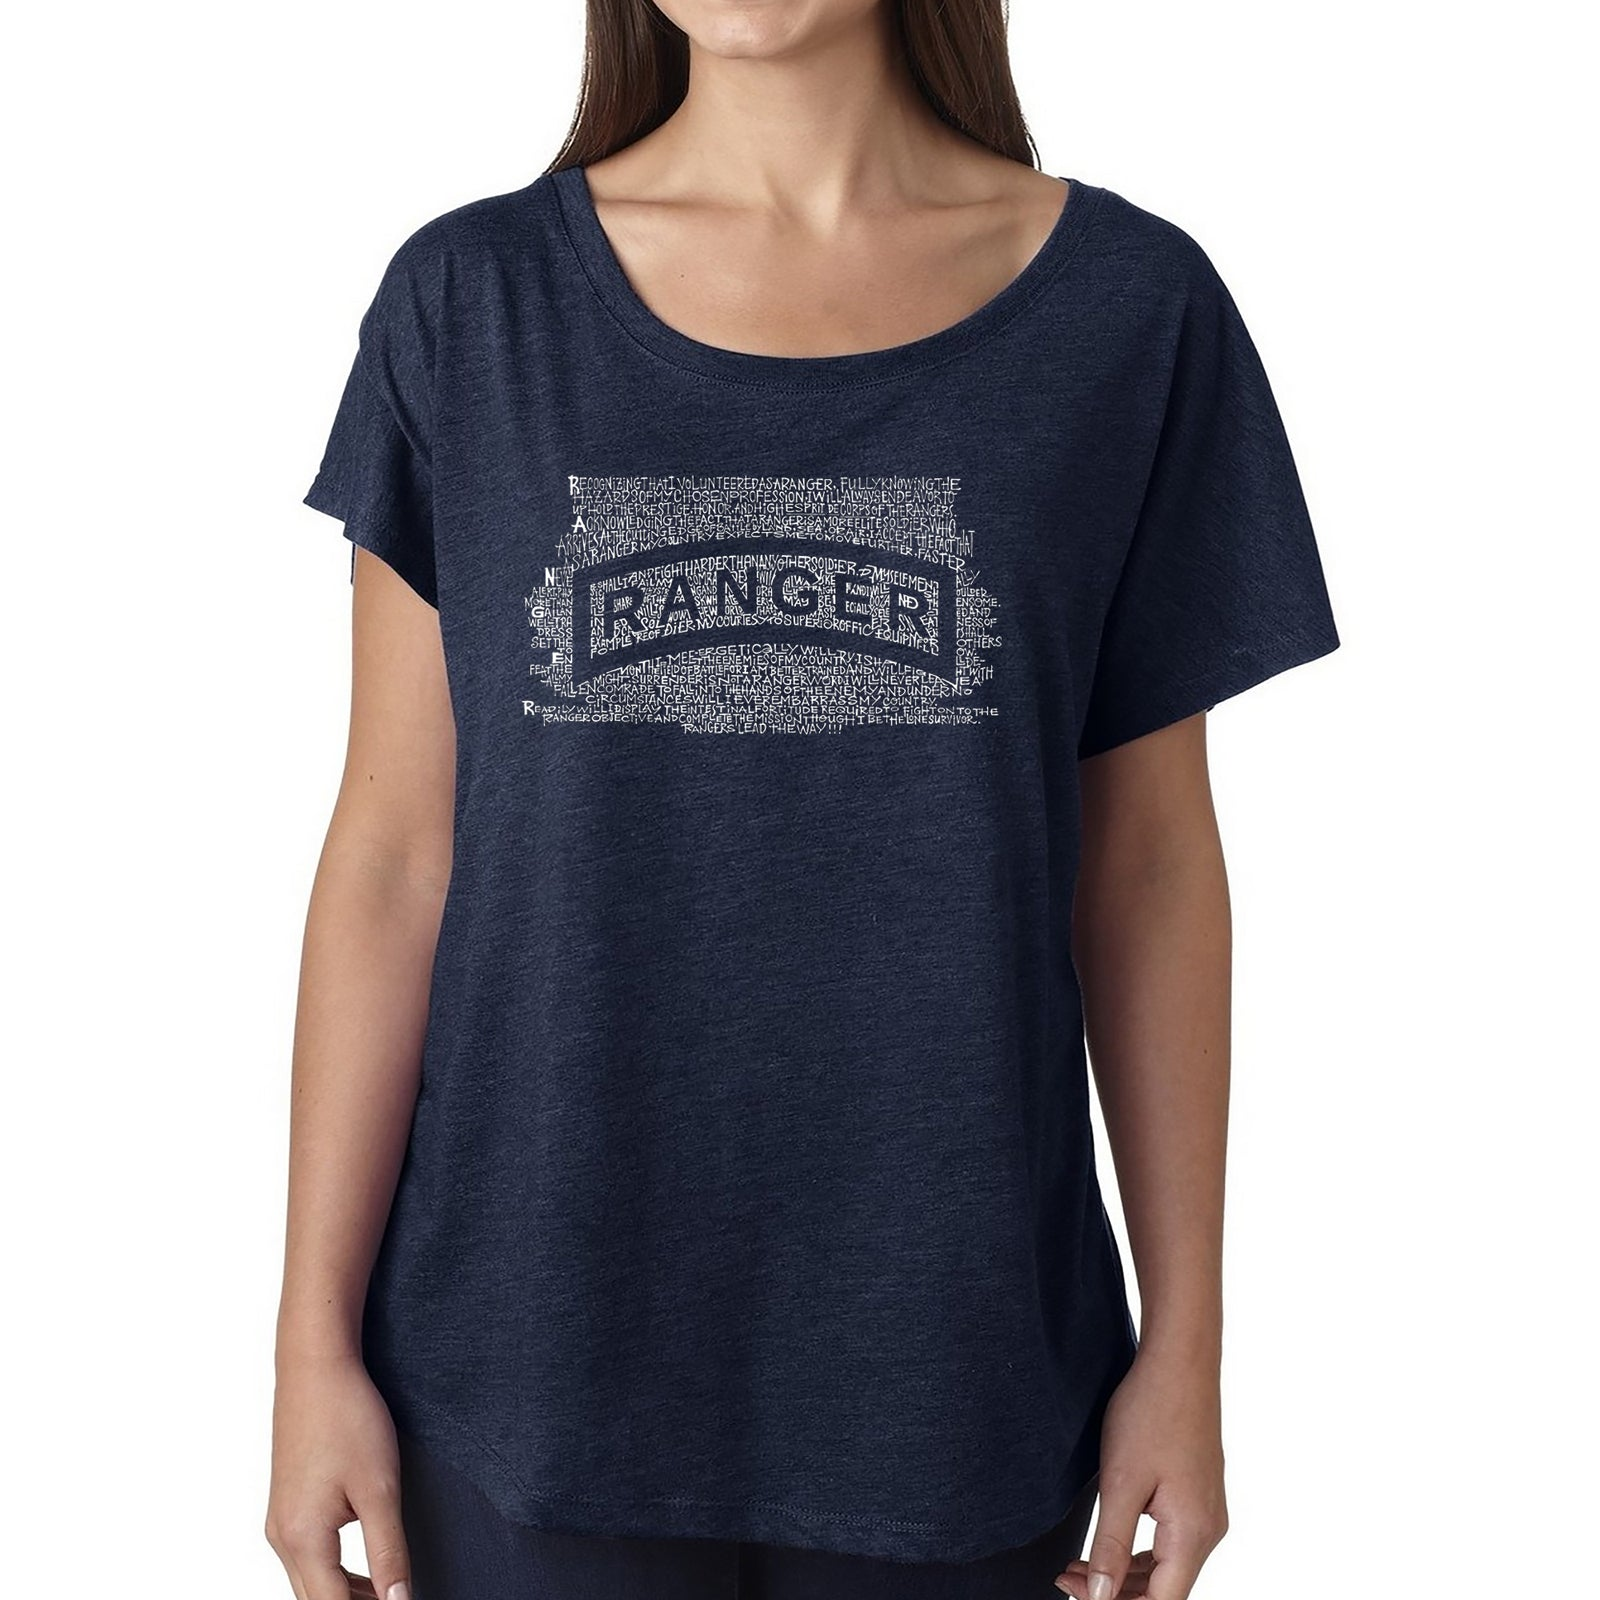 Women's Loose Fit Dolman Cut Word Art Shirt - The US Ranger Creed